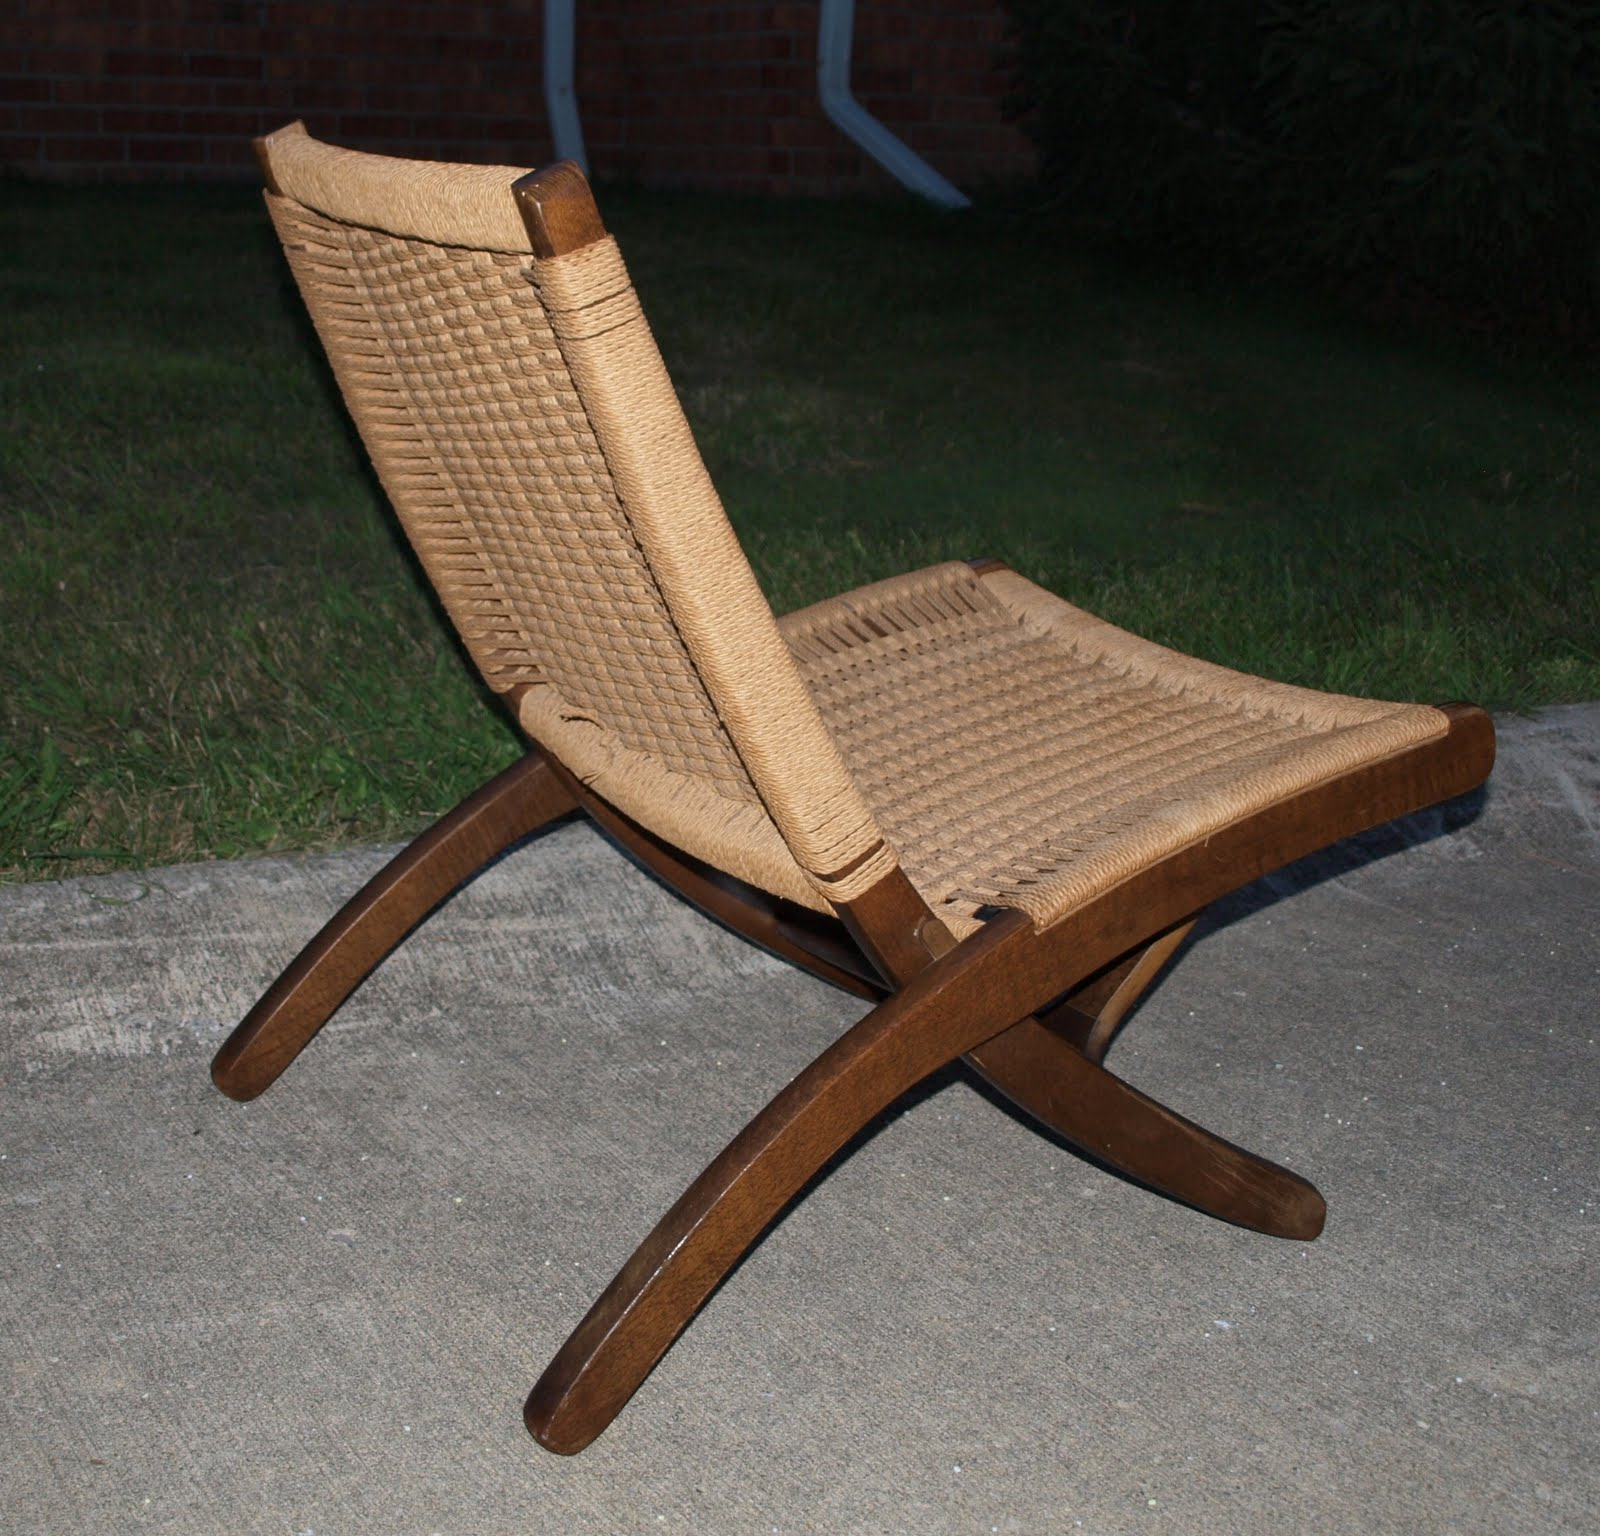 Yugoslavian Folding Chair Double Adirondack Chairs With Umbrella Funky Home Finds For Sale Wegner Style Danish Modern